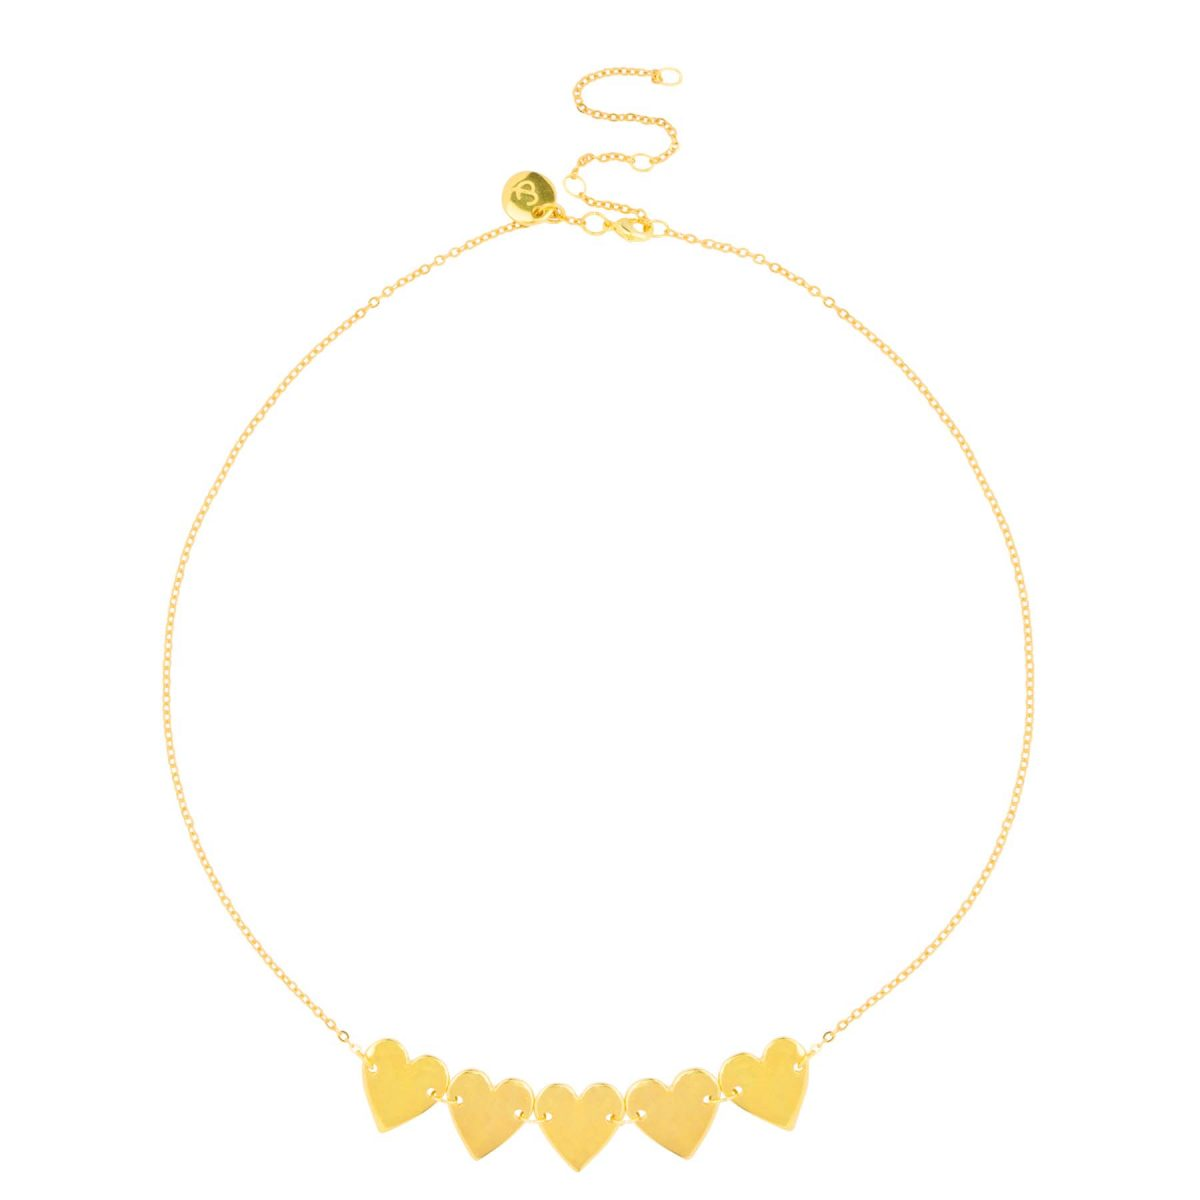 Trendy 24k gold plated necklace with little heart charms from the &anne jewelry collection